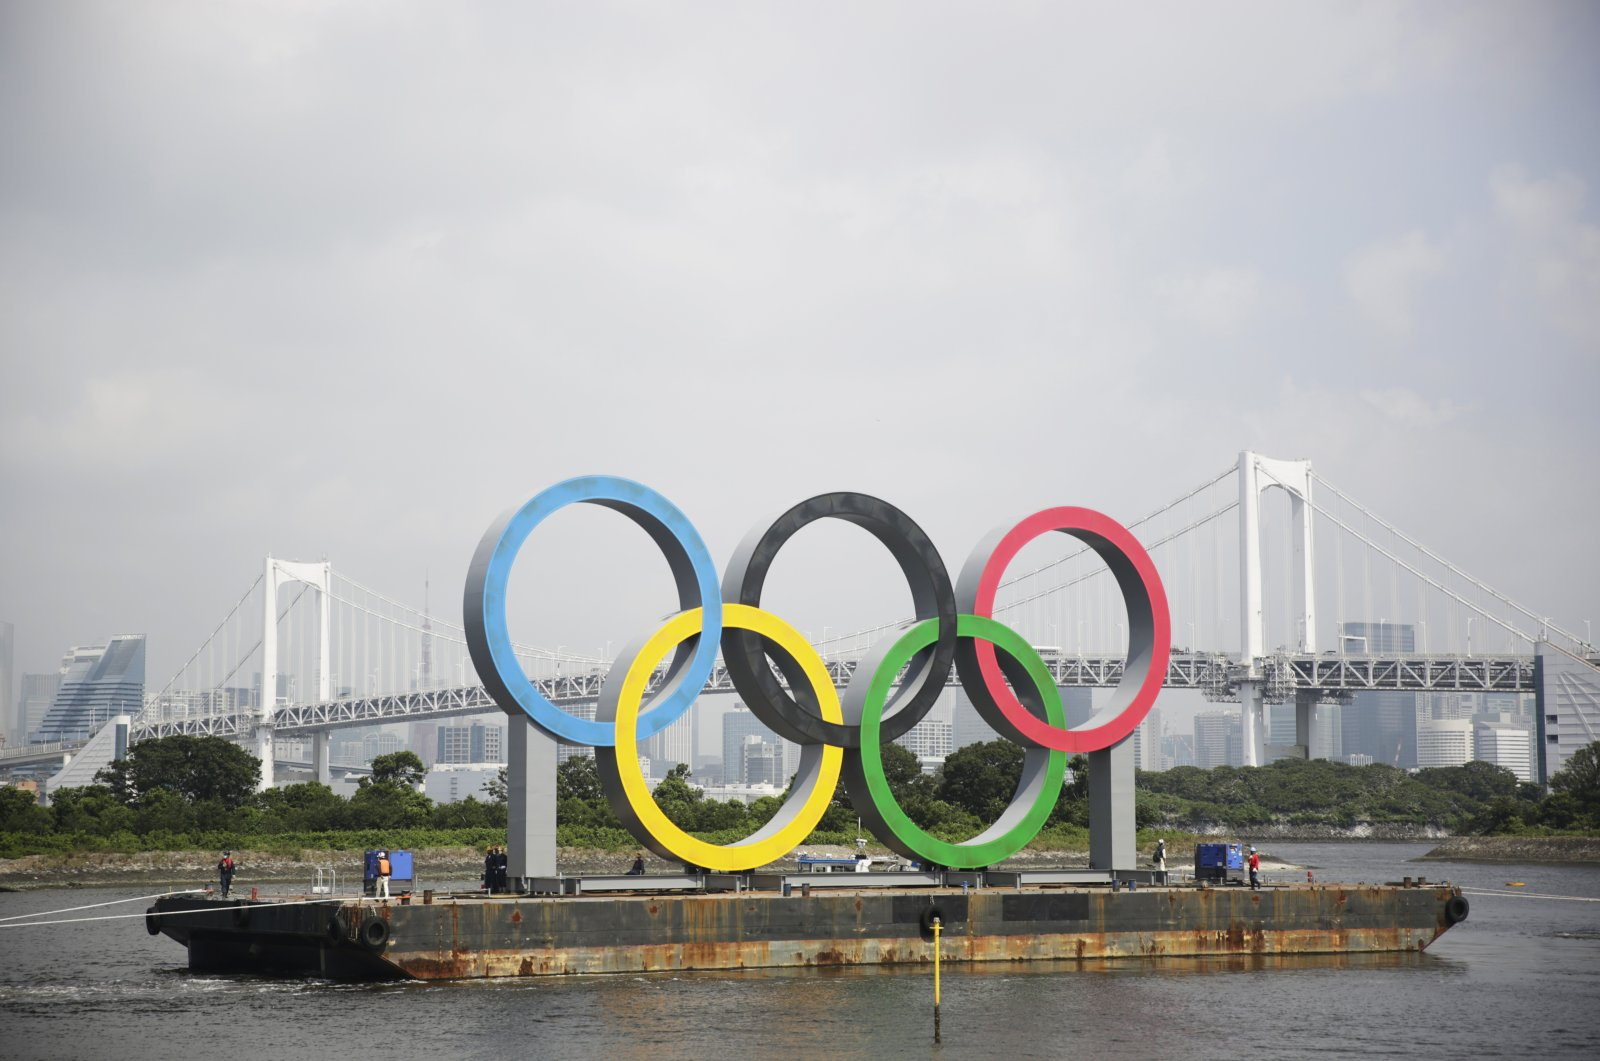 A barge carries the Olympic rings for maintenance due to postponement of the Tokyo 2020 Games, in Tokyo, Japan, Aug. 6, 2020.